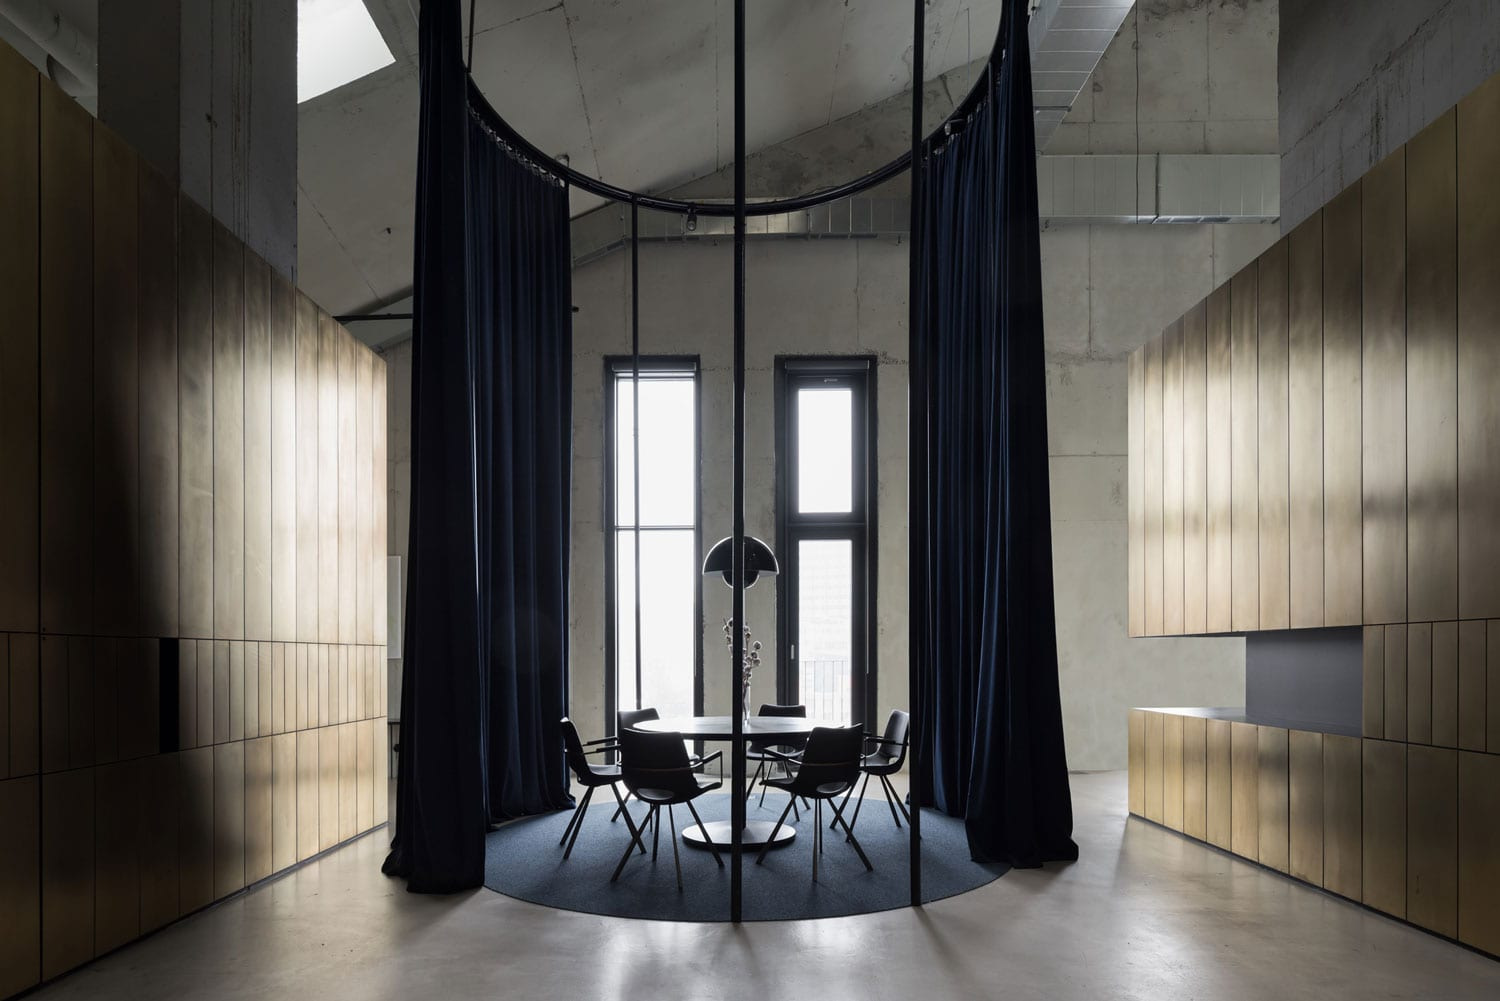 Residential Sales Office In Moscow Russia By Alexander Volkov Architects | Yellowtrace